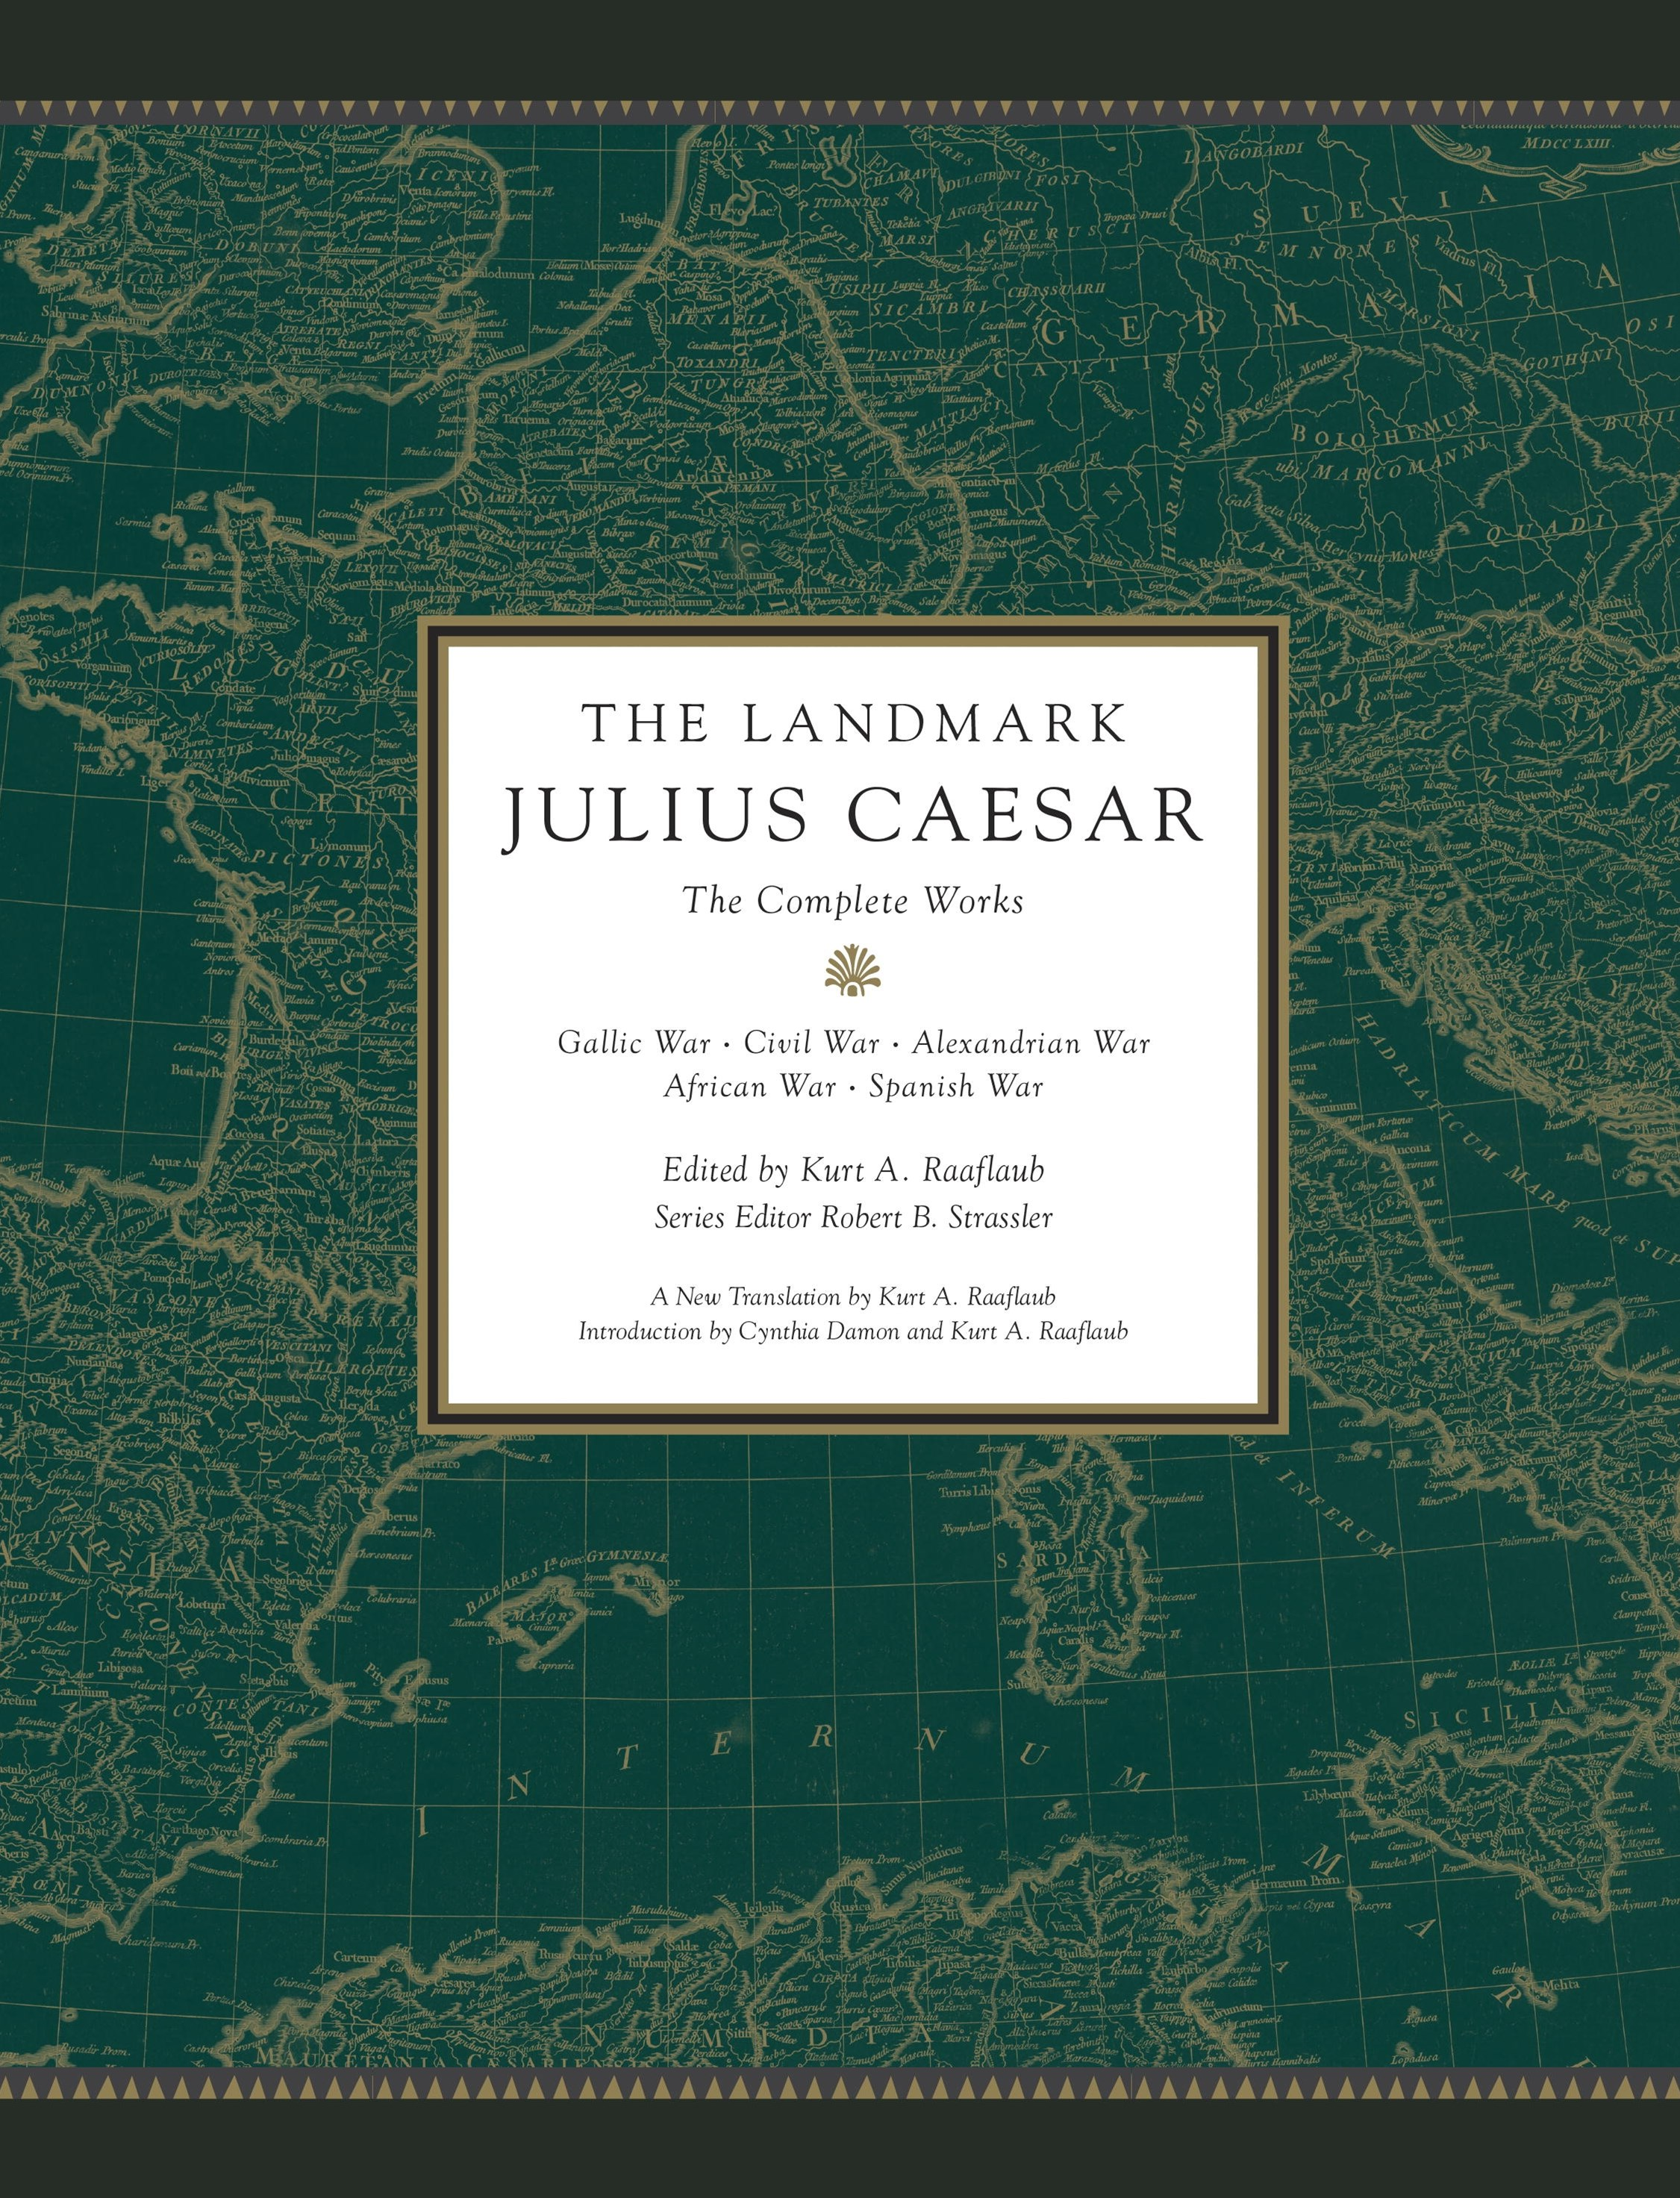 The Landmark Julius Caesar: The Complete Works: Gallic War, Civil War, Alexandrian War, African War, and Spanish War